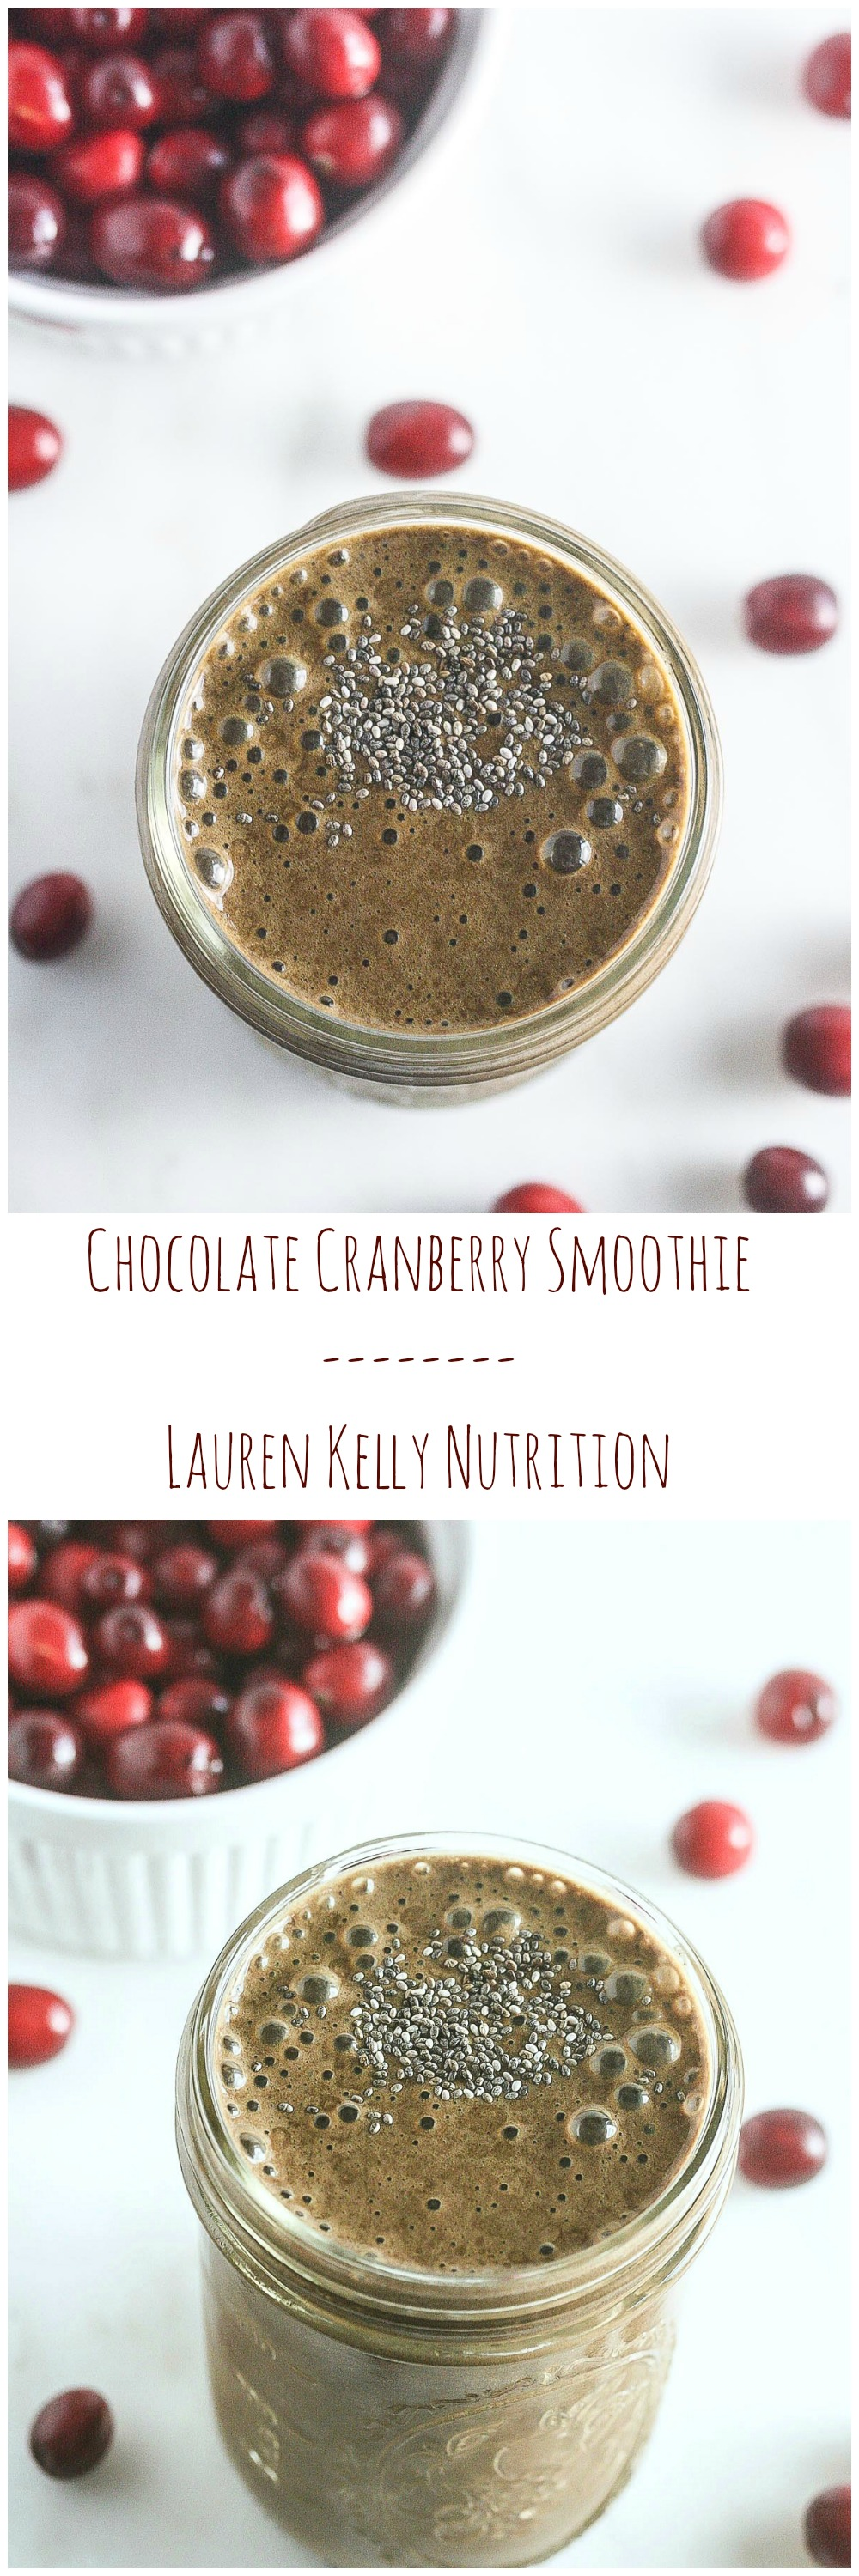 This Chocolate Cranberry Smoothie is packed with vitamins and antioxidants and is vegan, gluten-free and sugar-free! www.laurenkellynutrition.com